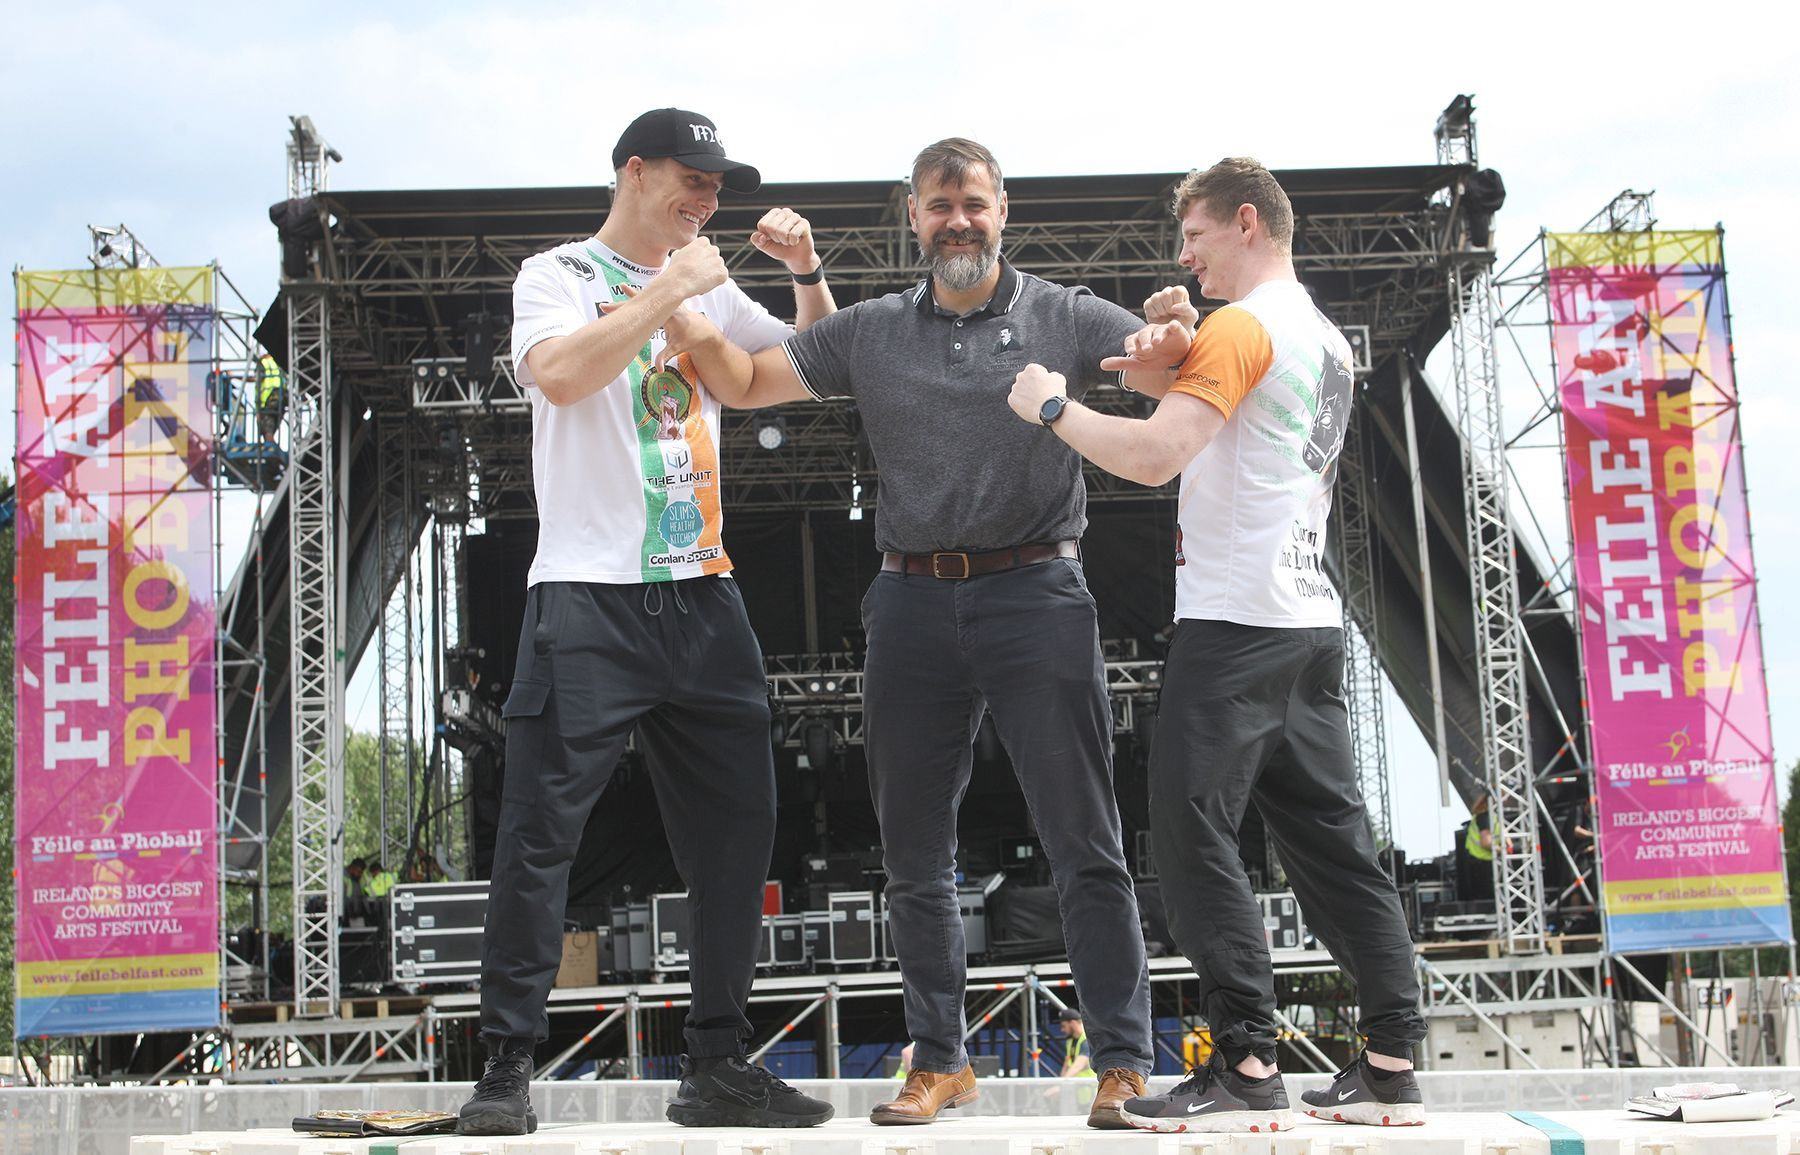 TOURISM SECTOR IS FIGHTING BACK: Harry Connolly HOLDING THEM BACK: Féile an Phobail chairperson Harry Connolly with MMA Irish title challengers Paddy McCorry and Ciaran Mulholland, ahead of Cage Conflict IV in the Falls Park during Féile 2021.